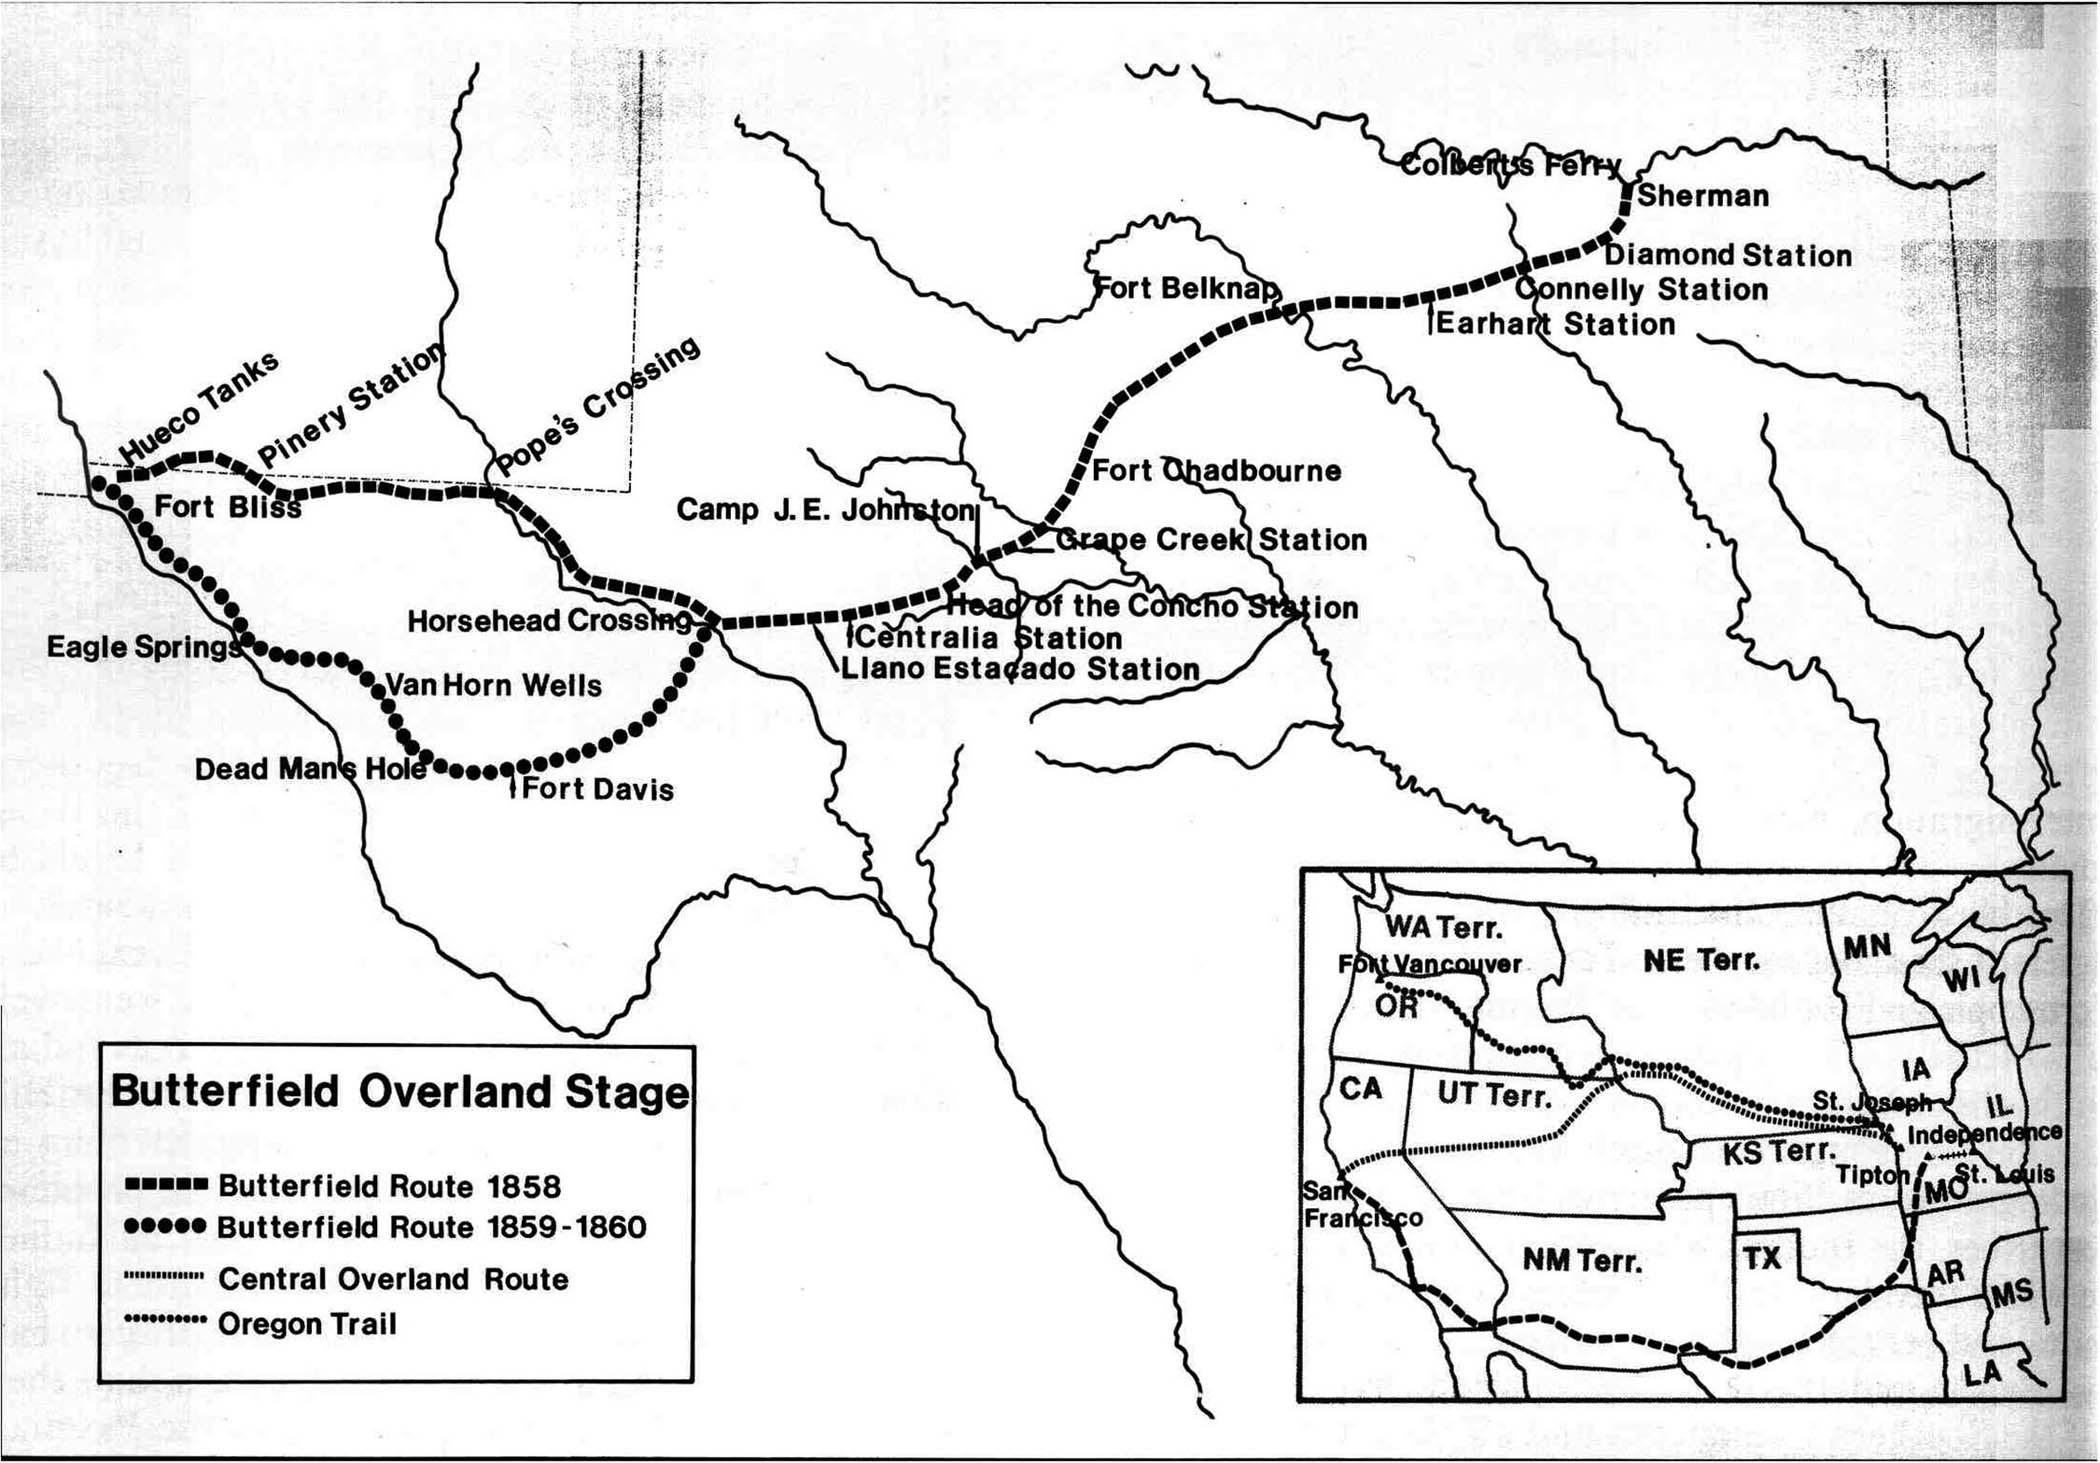 Map of the Butterfield Overland Mail Route through Texas and the Central Overland Route in the inset.